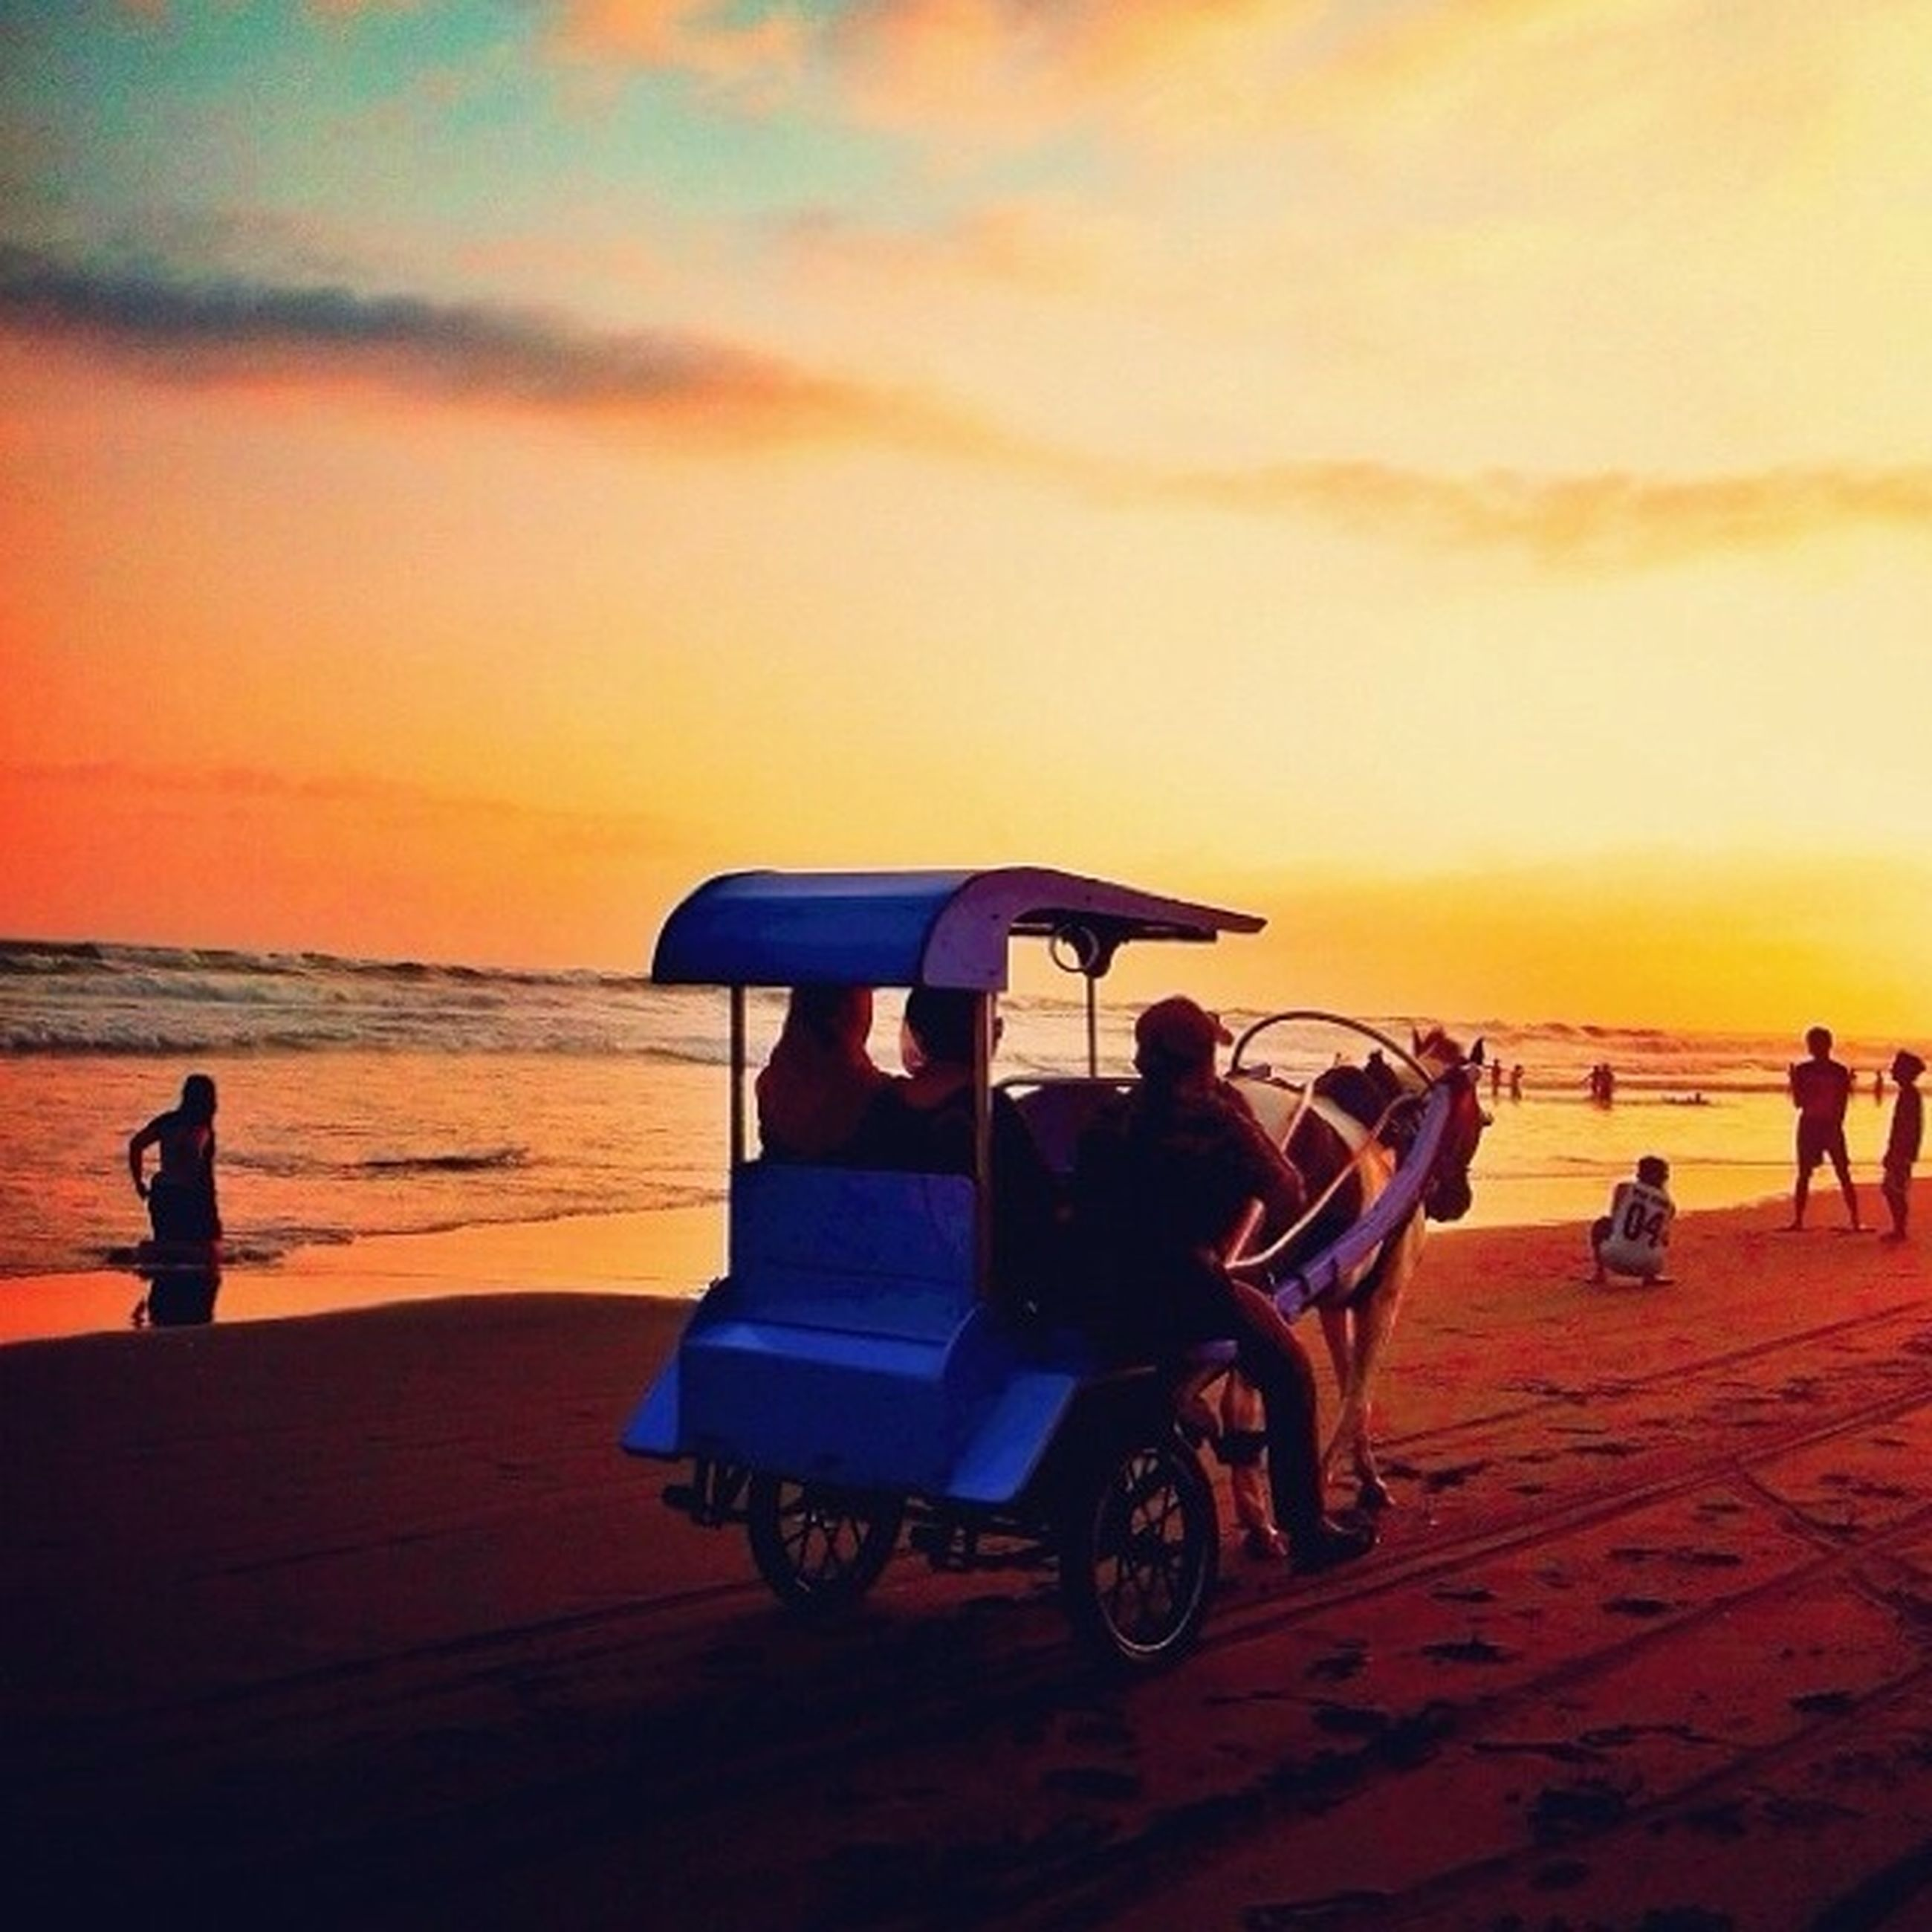 sunset, sea, beach, sky, horizon over water, water, lifestyles, leisure activity, orange color, men, silhouette, person, shore, scenics, sand, cloud - sky, beauty in nature, vacations, sitting